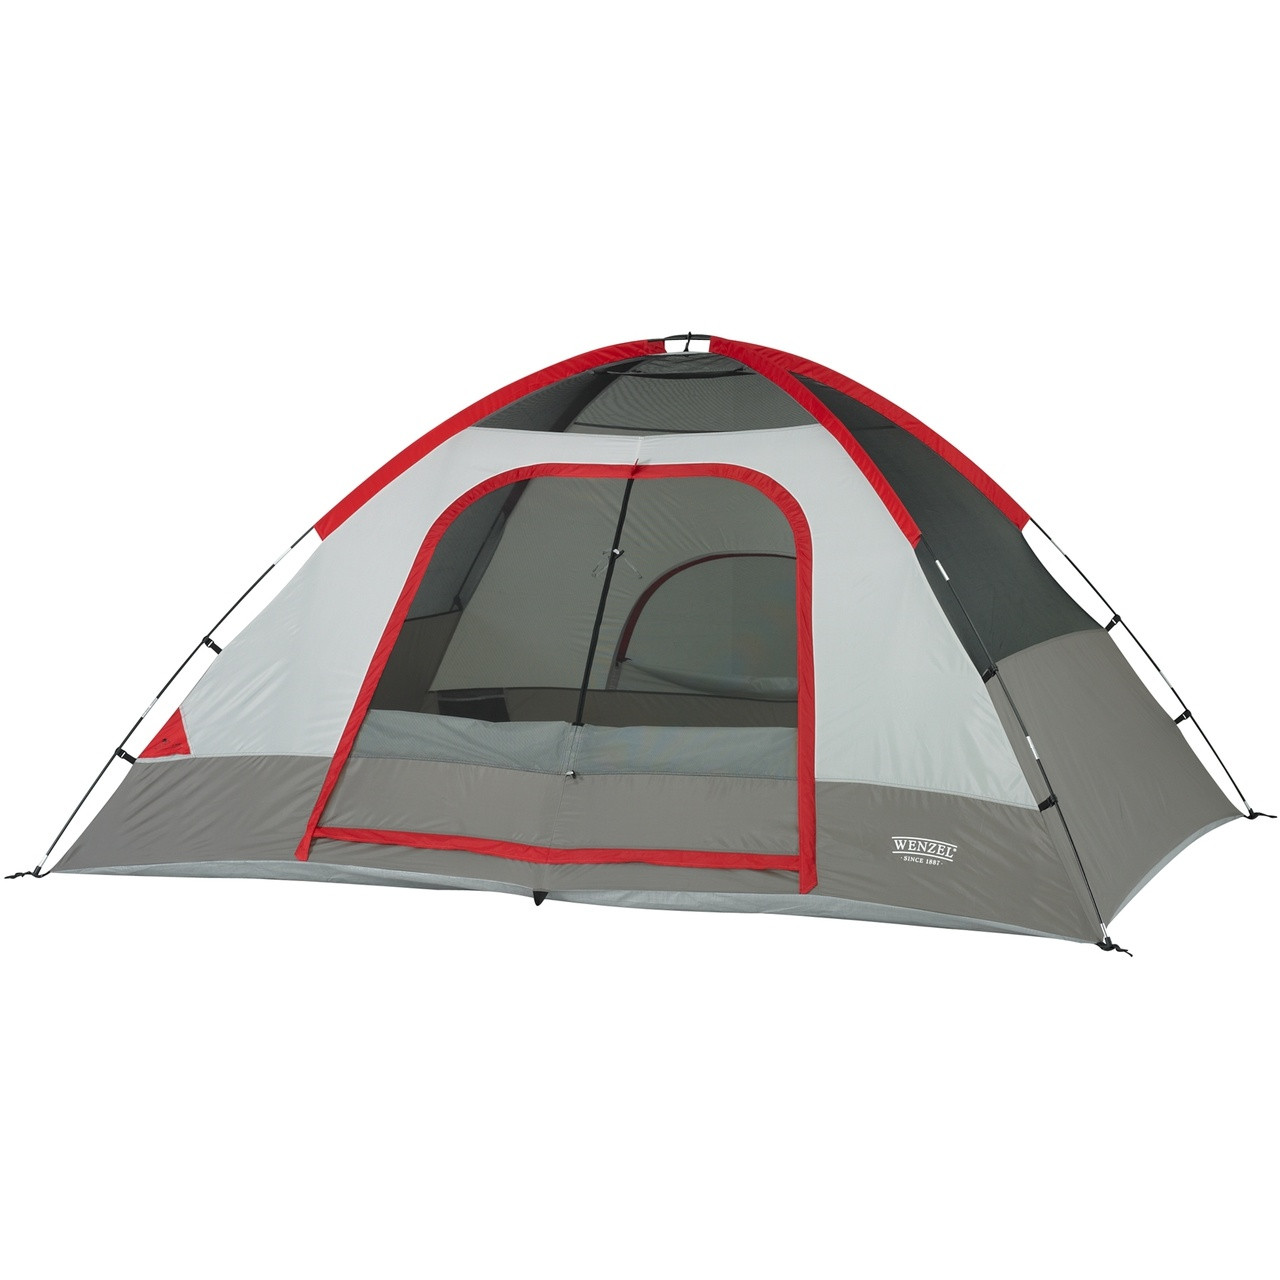 Wenzel Pine Ridge 5 tent, gray and tan, setup with the rain fly off and the main and back screen windows rolled open